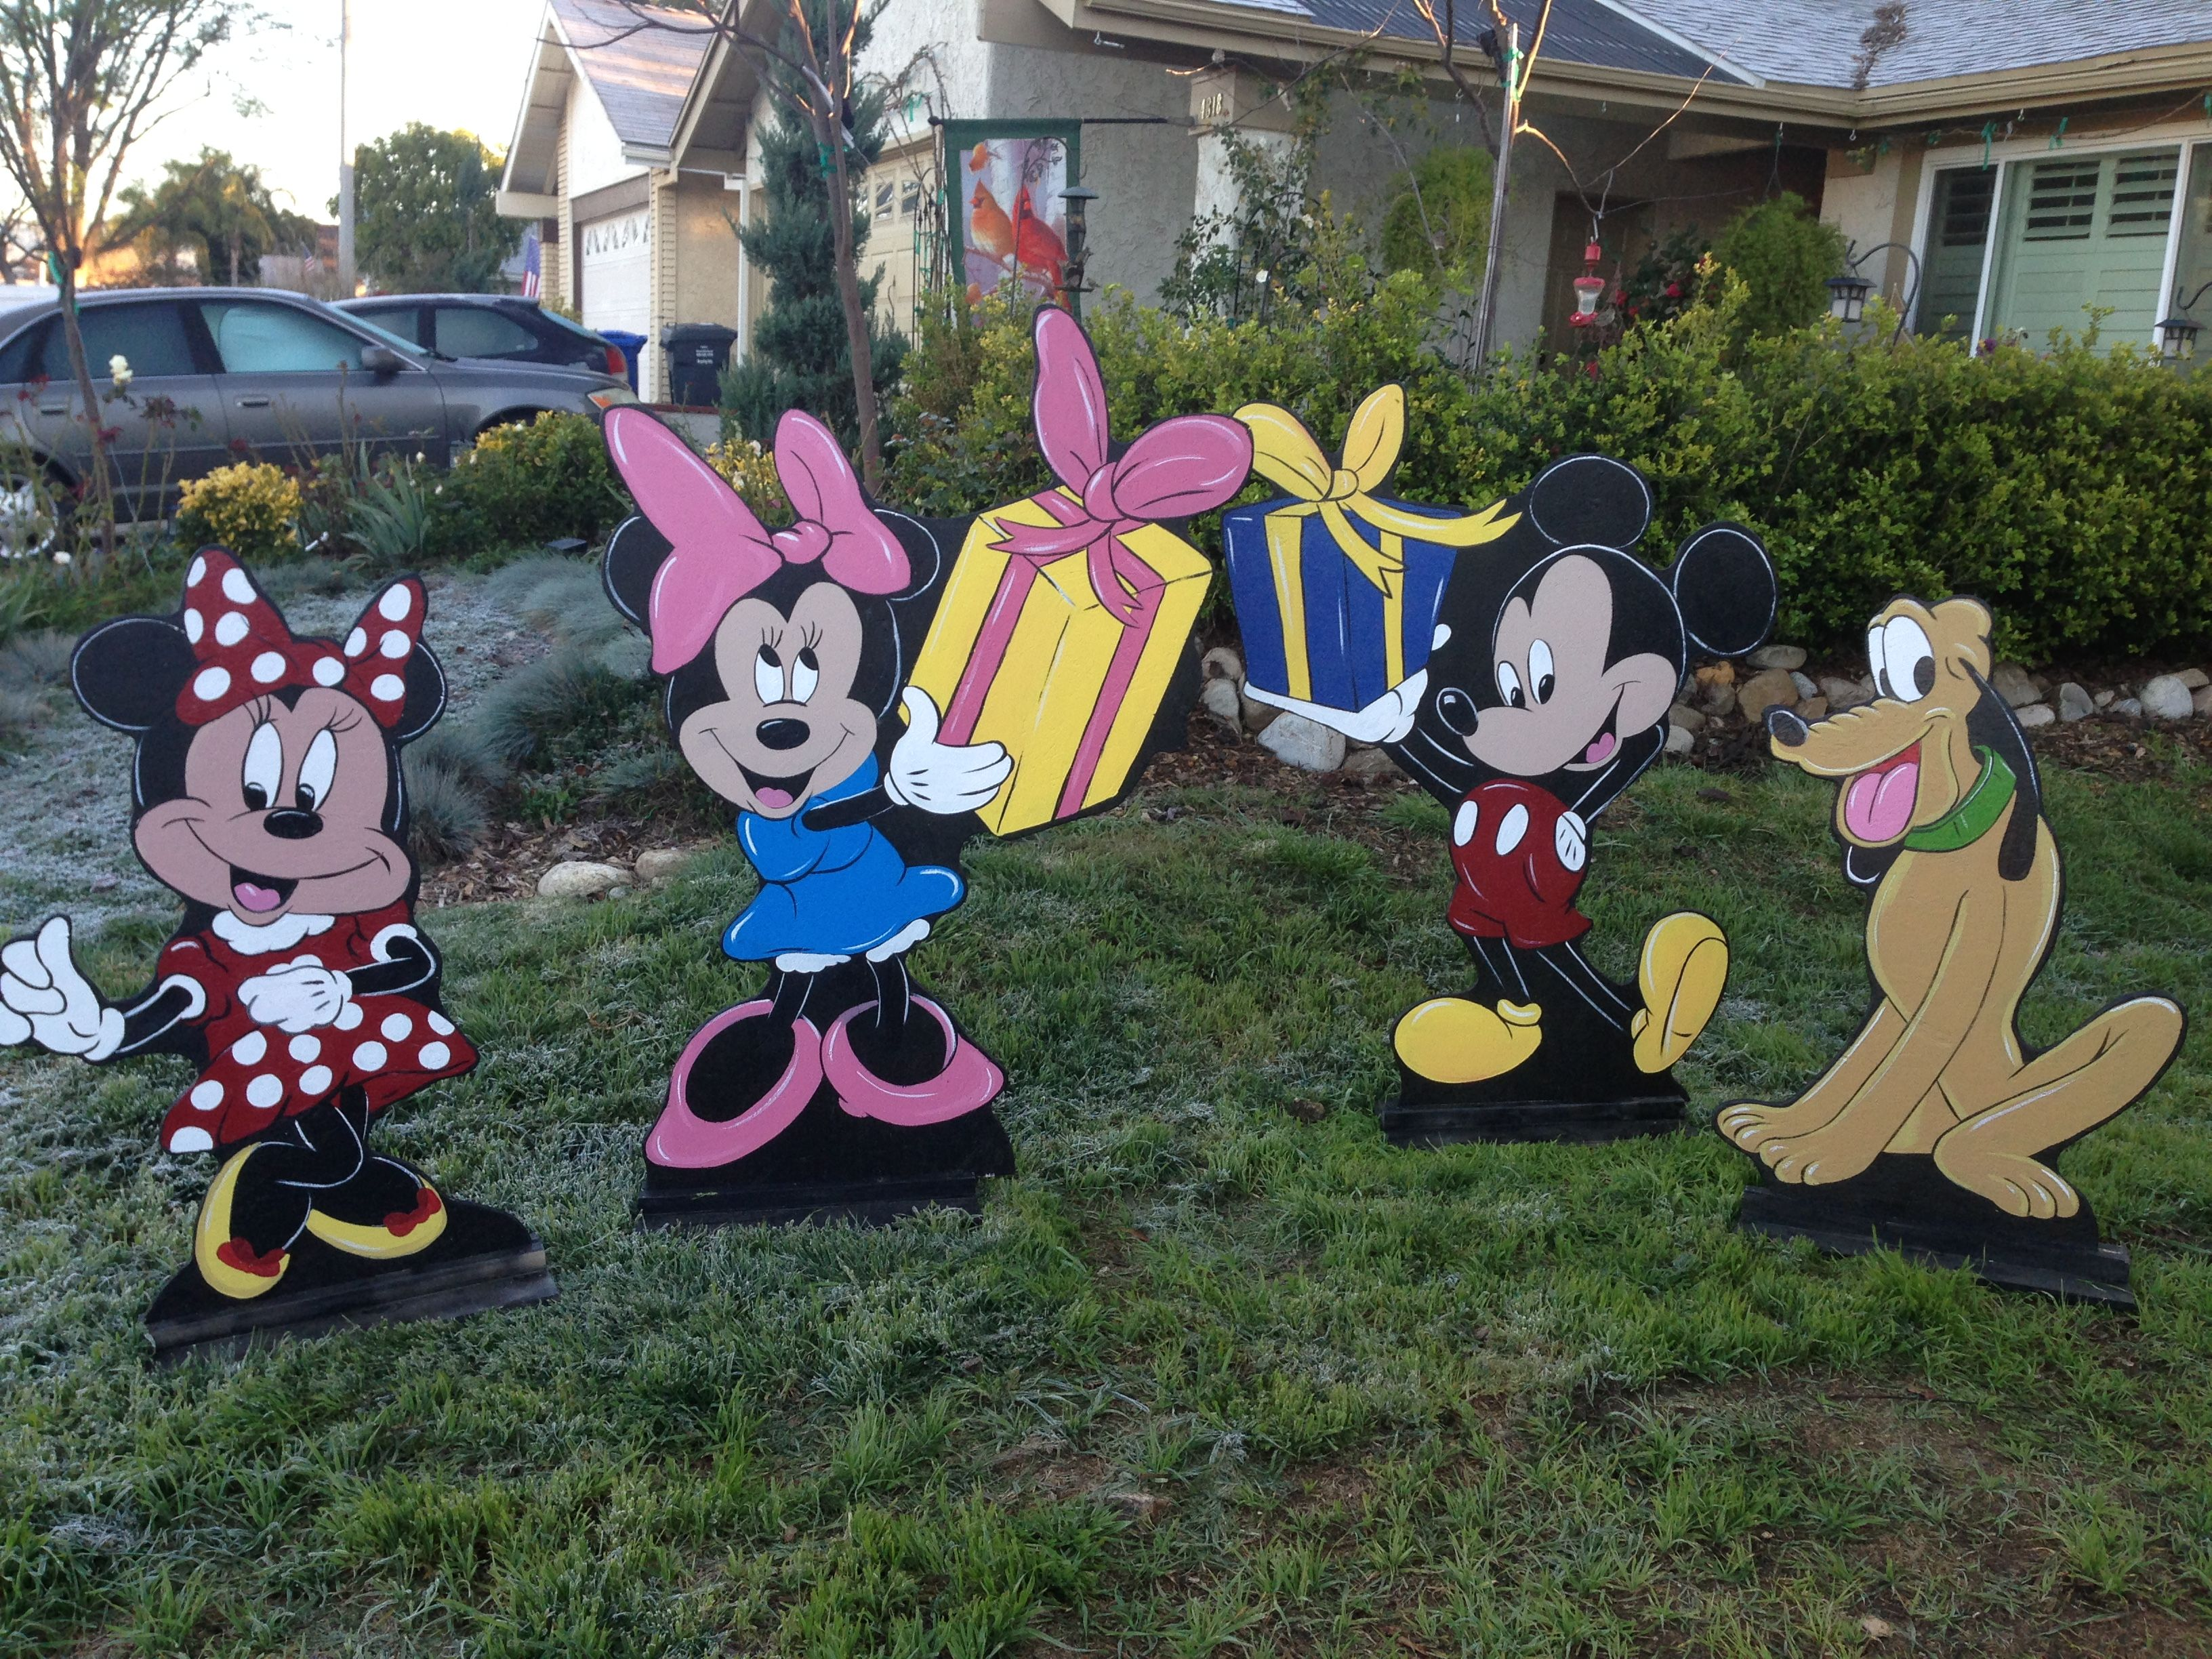 13+ Disney arts and crafts for adults ideas in 2021